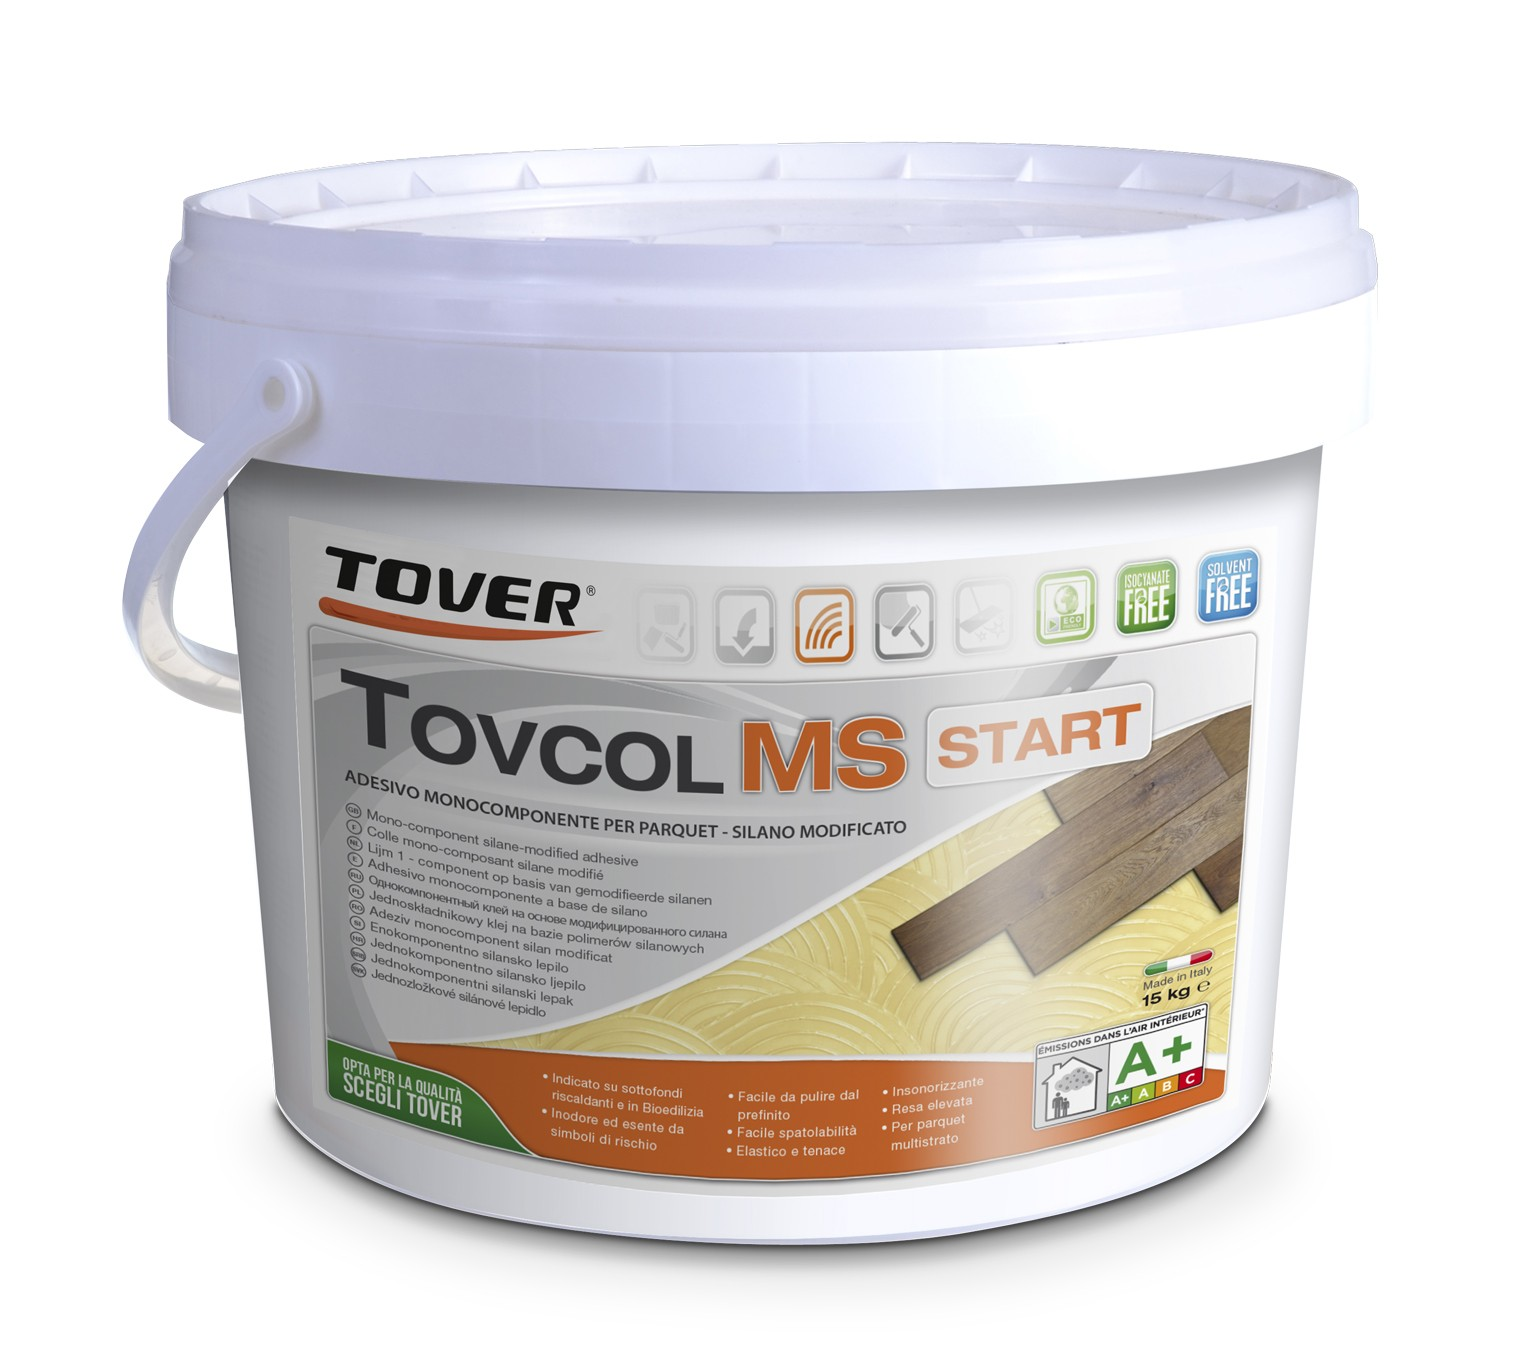 Tover  Mono-Component Silane Modified Adhesive Tovcol MS Start Polymer